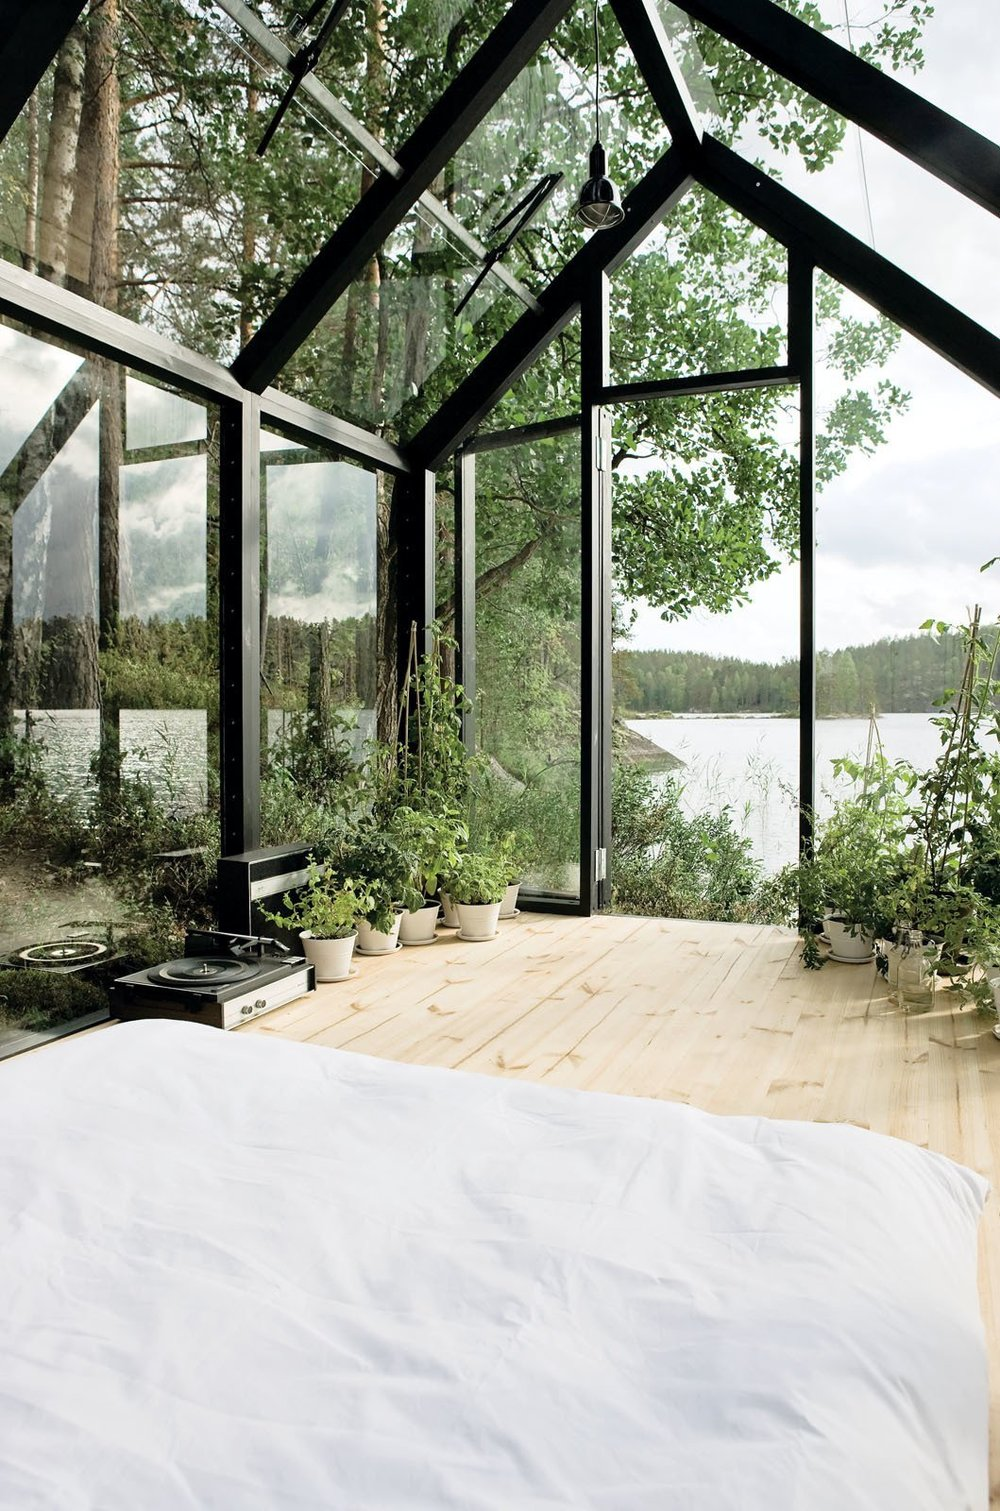 This cabin in Finland might not have the traditional cabin look but it is stunning nontheless. Imagine lying here when the leaves are falling or to watch the sunset over the lake | photos by Arsi Ikäheimonen